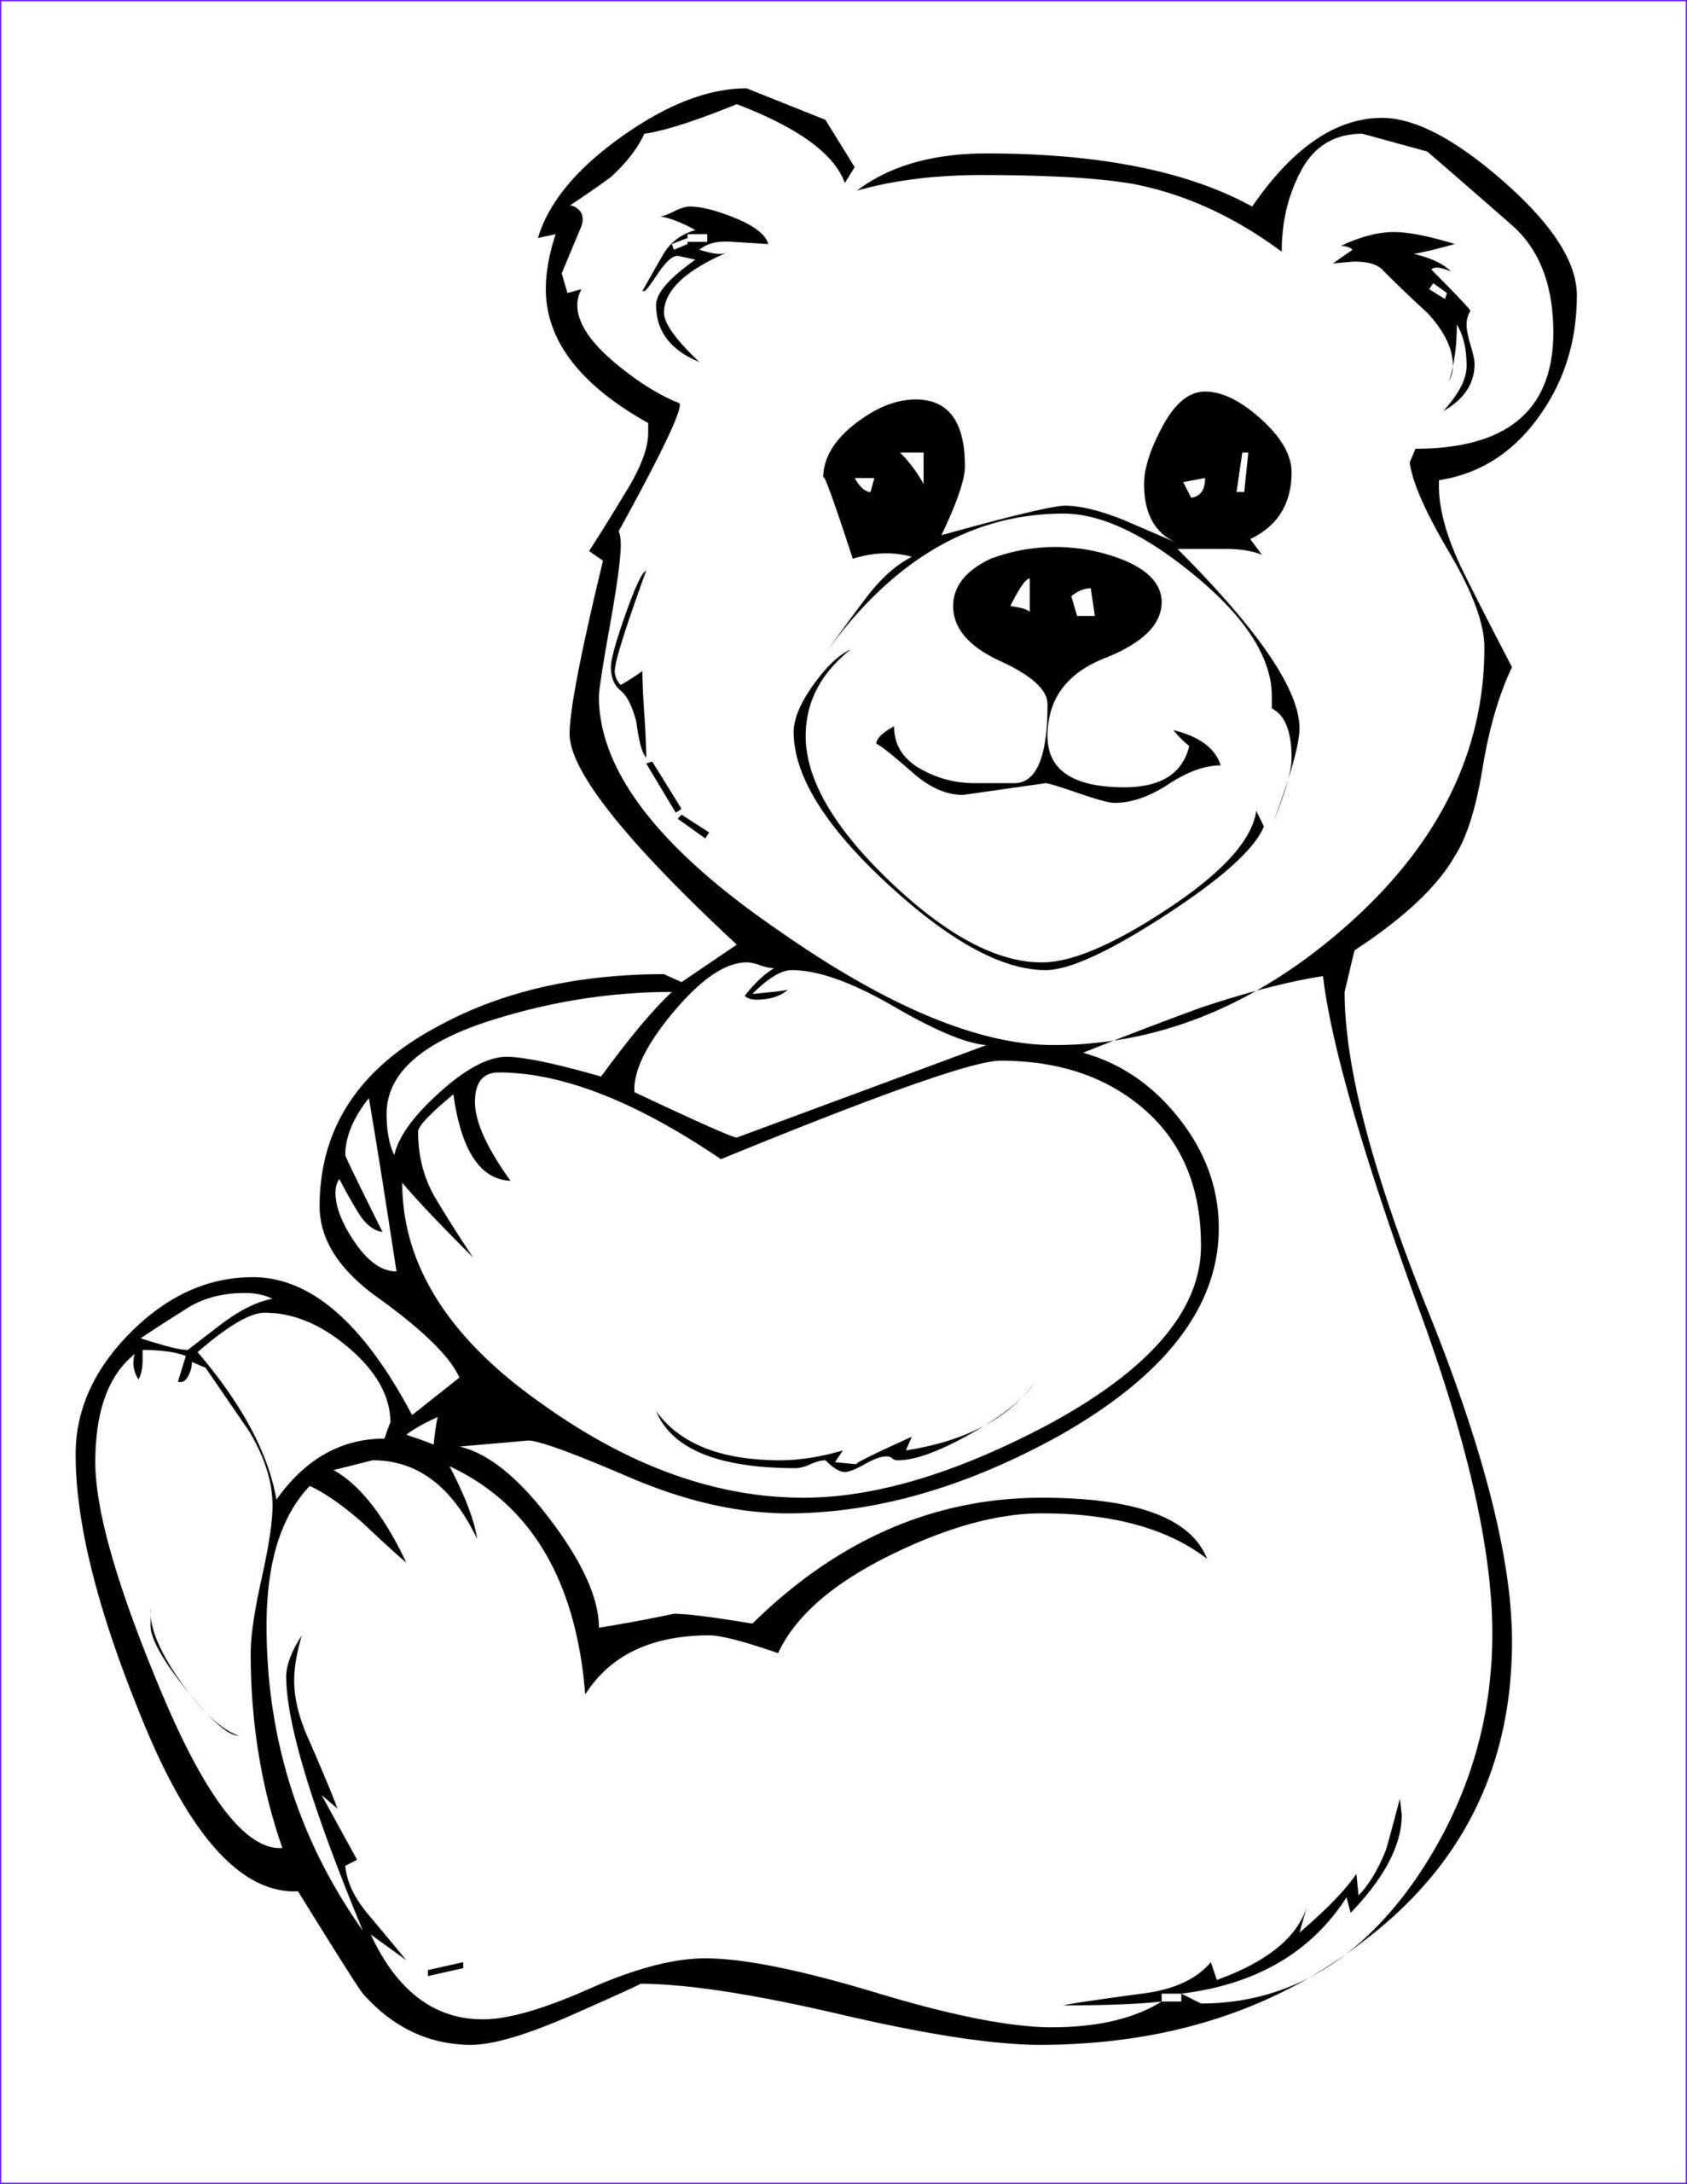 Teddy Bear Coloring Pages Luxury Stock Study Free Printable Teddy Bear Coloring Pages for Kids